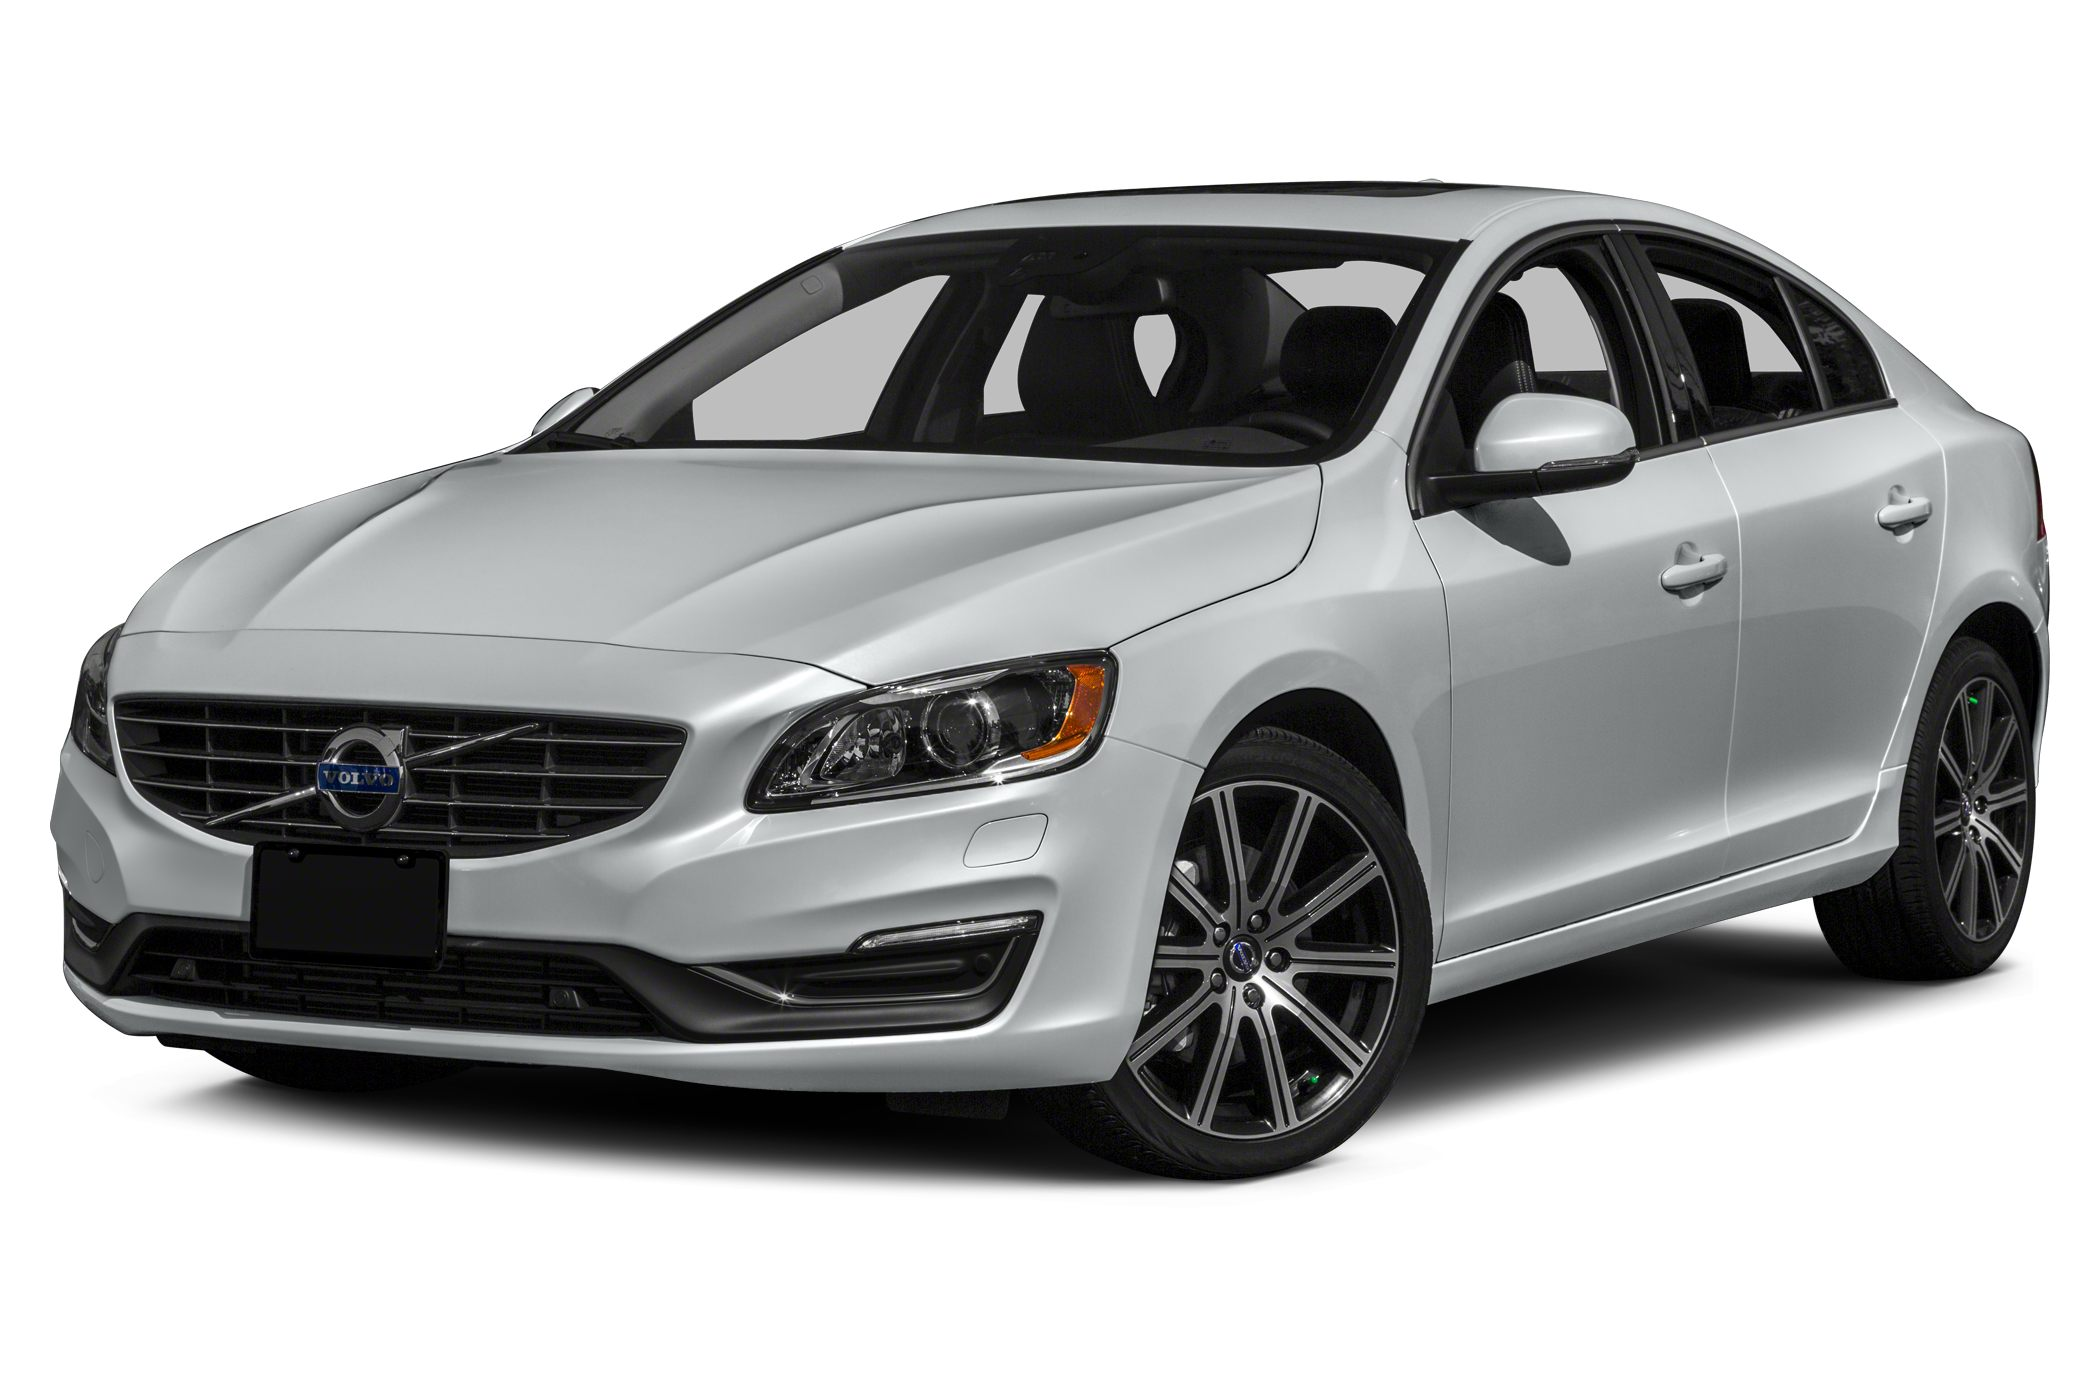 2014 Volvo S60 T5 Premier Sedan for sale in Wakefield for $31,999 with 14,547 miles.